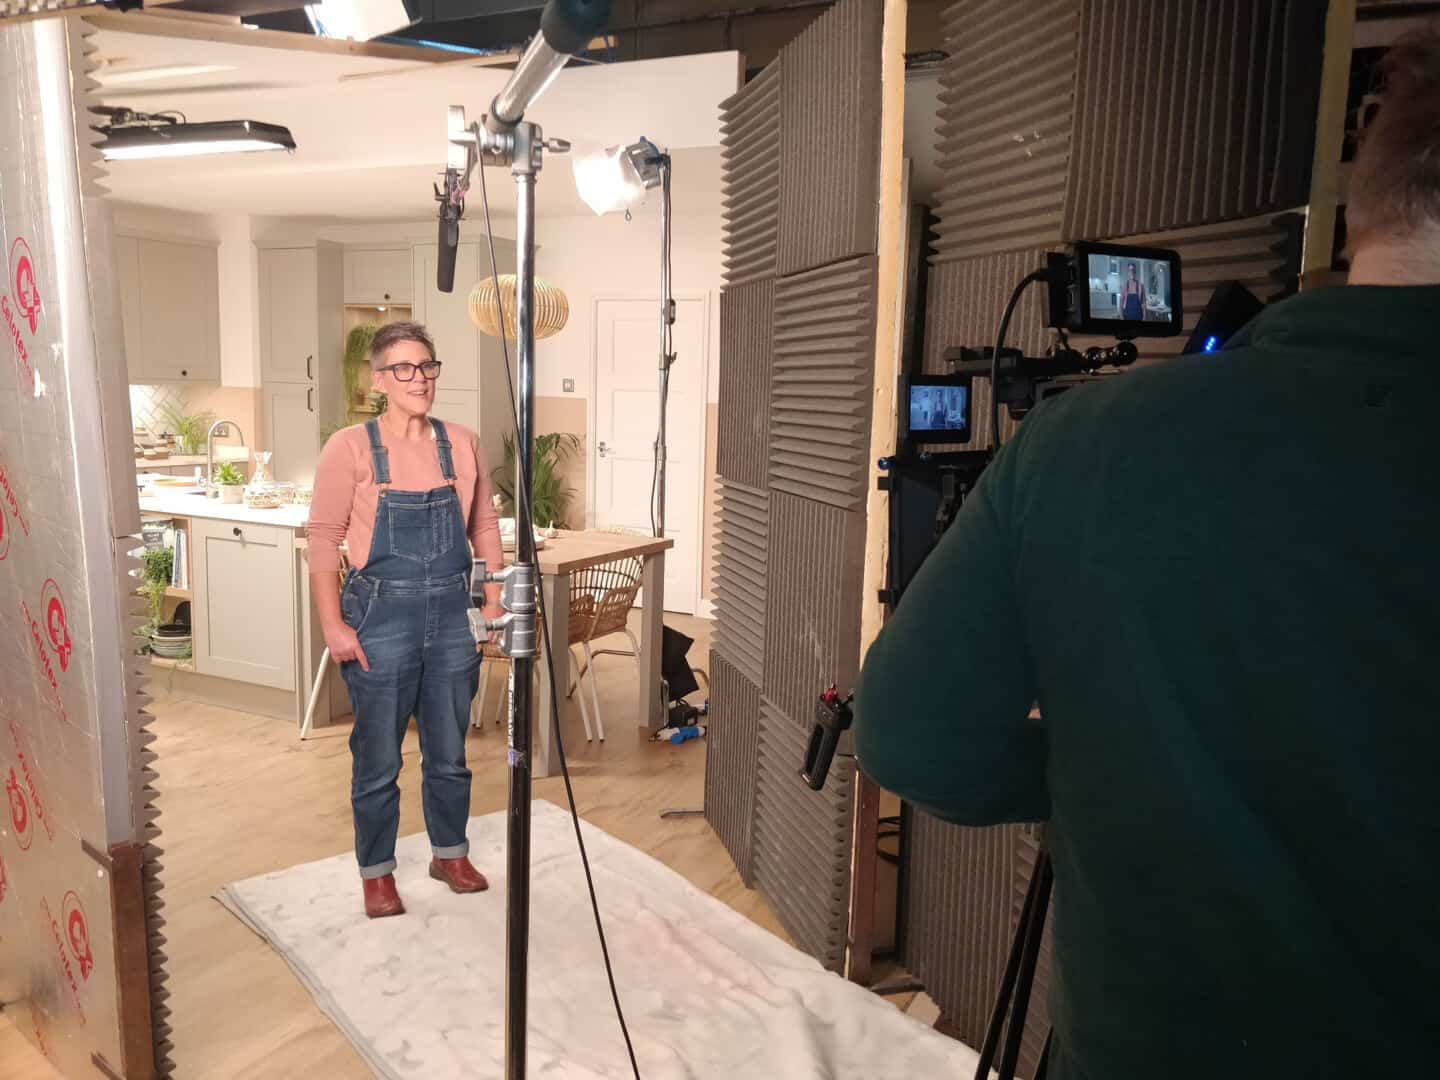 Award-winning interiors blogger STacey Sheppard on the set of Magnet's Tatton Kitchen in Pebble